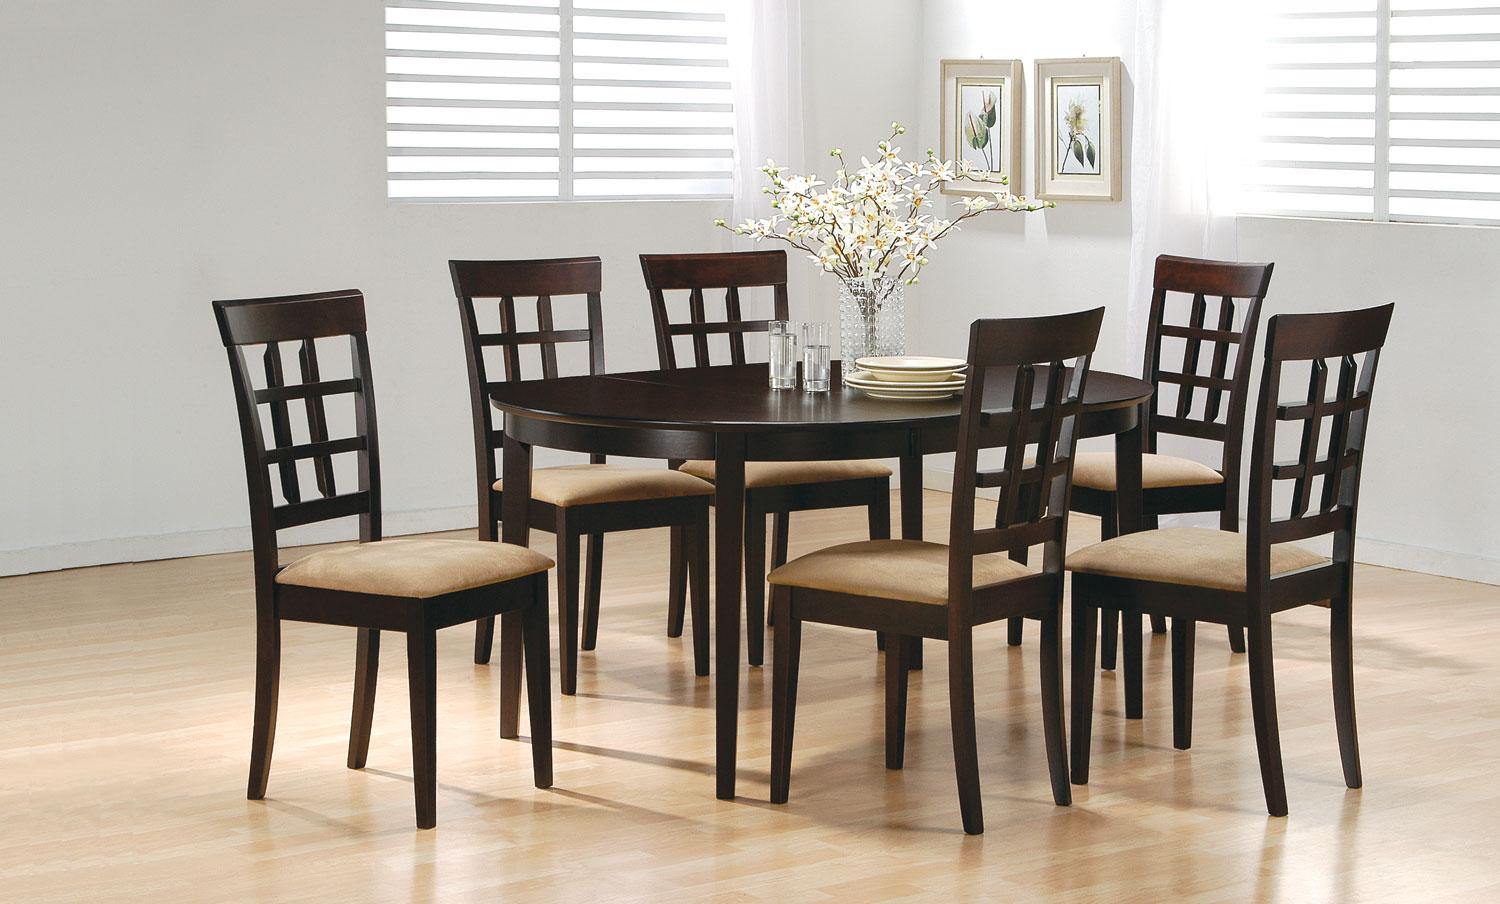 7 Pc Cappuccino Oval Dining Set with Leaf